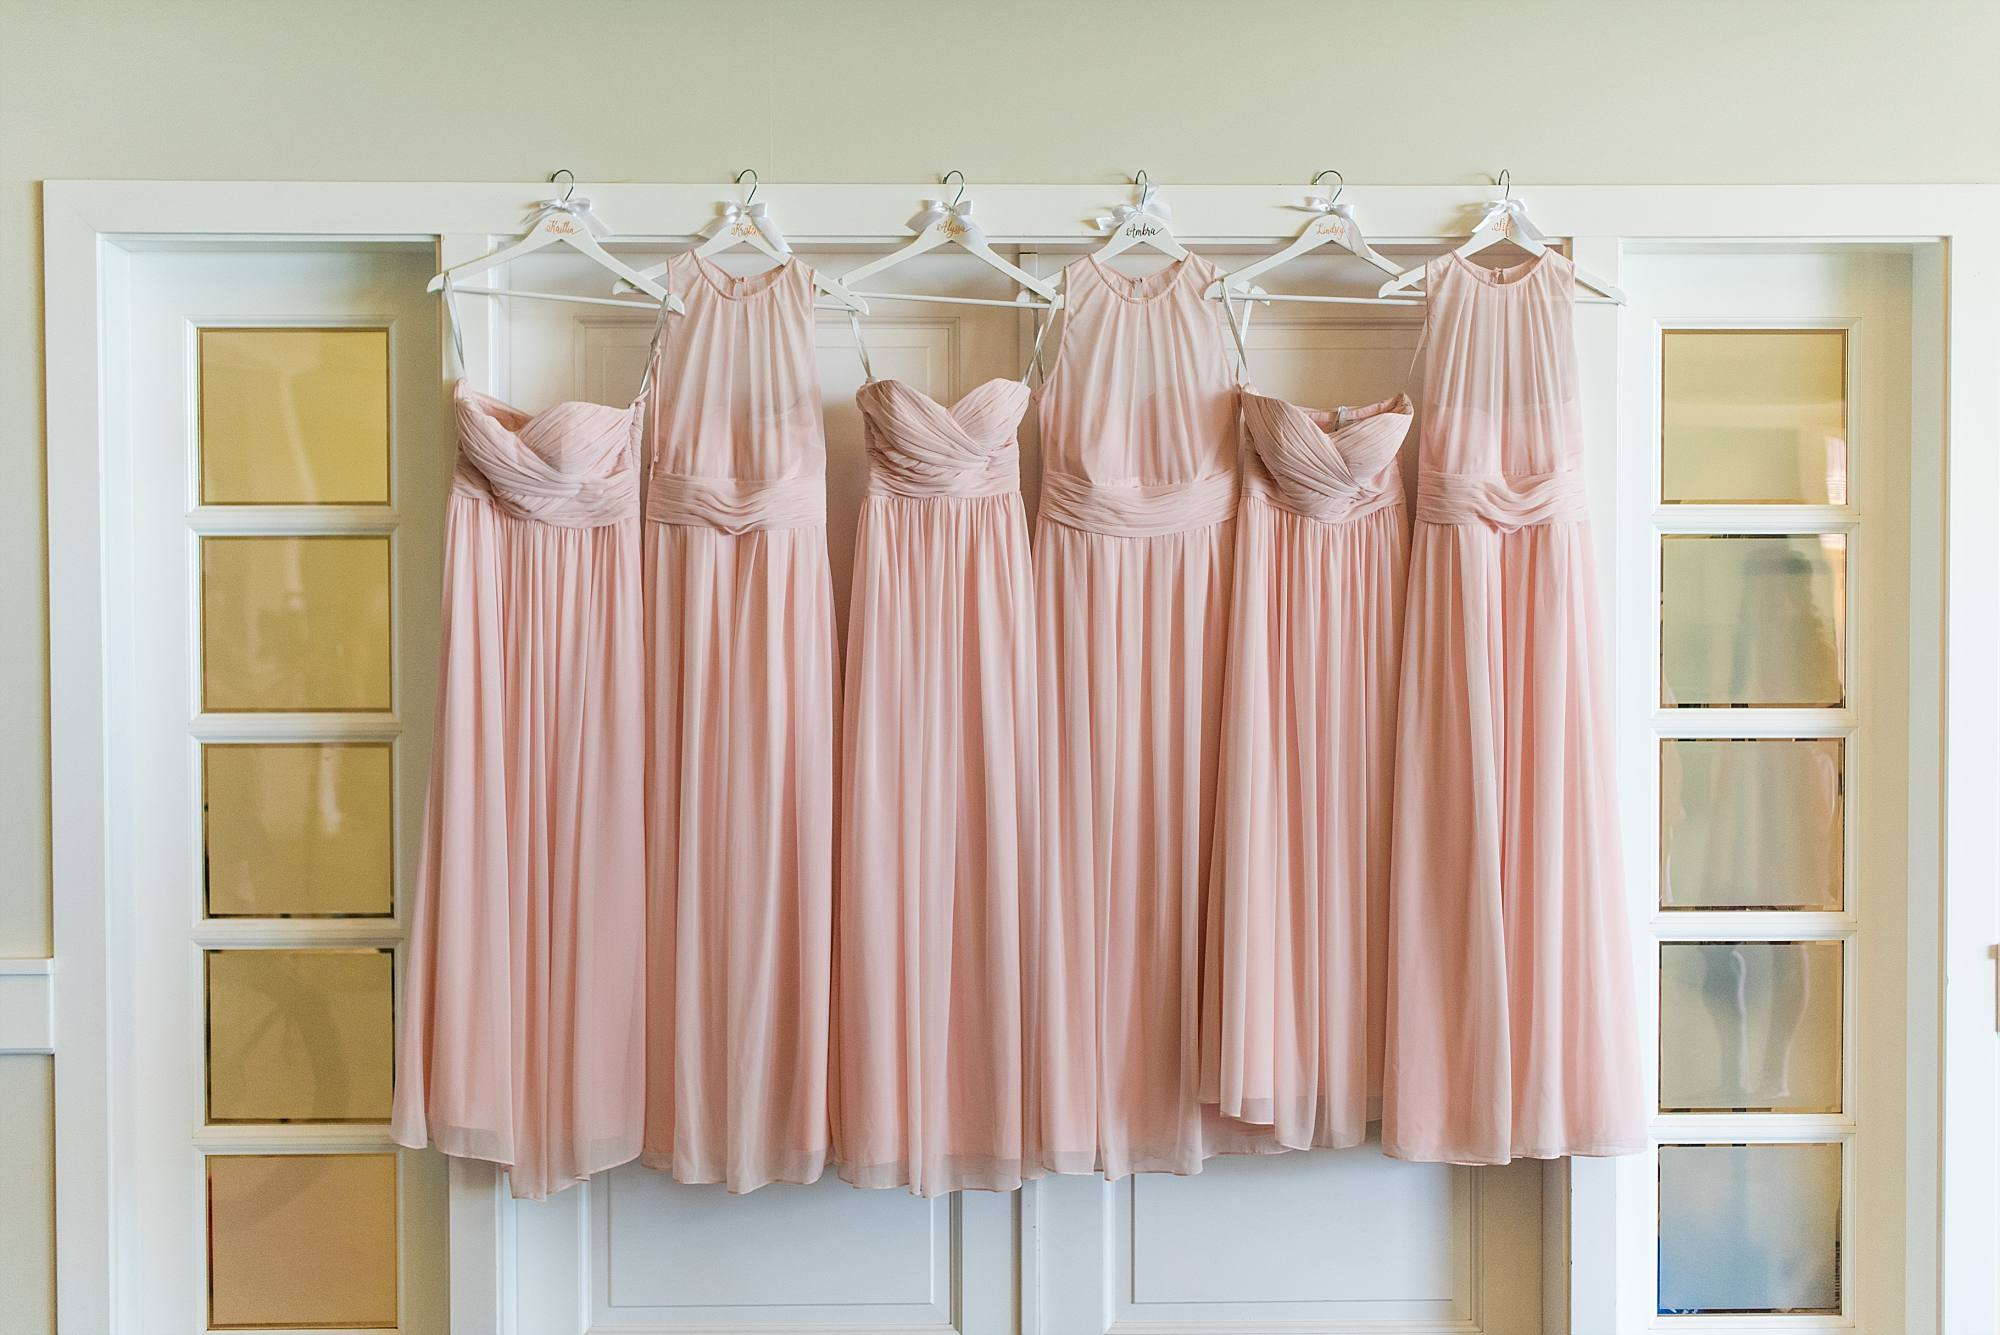 light pink bridesmaids' dresses hanging all together